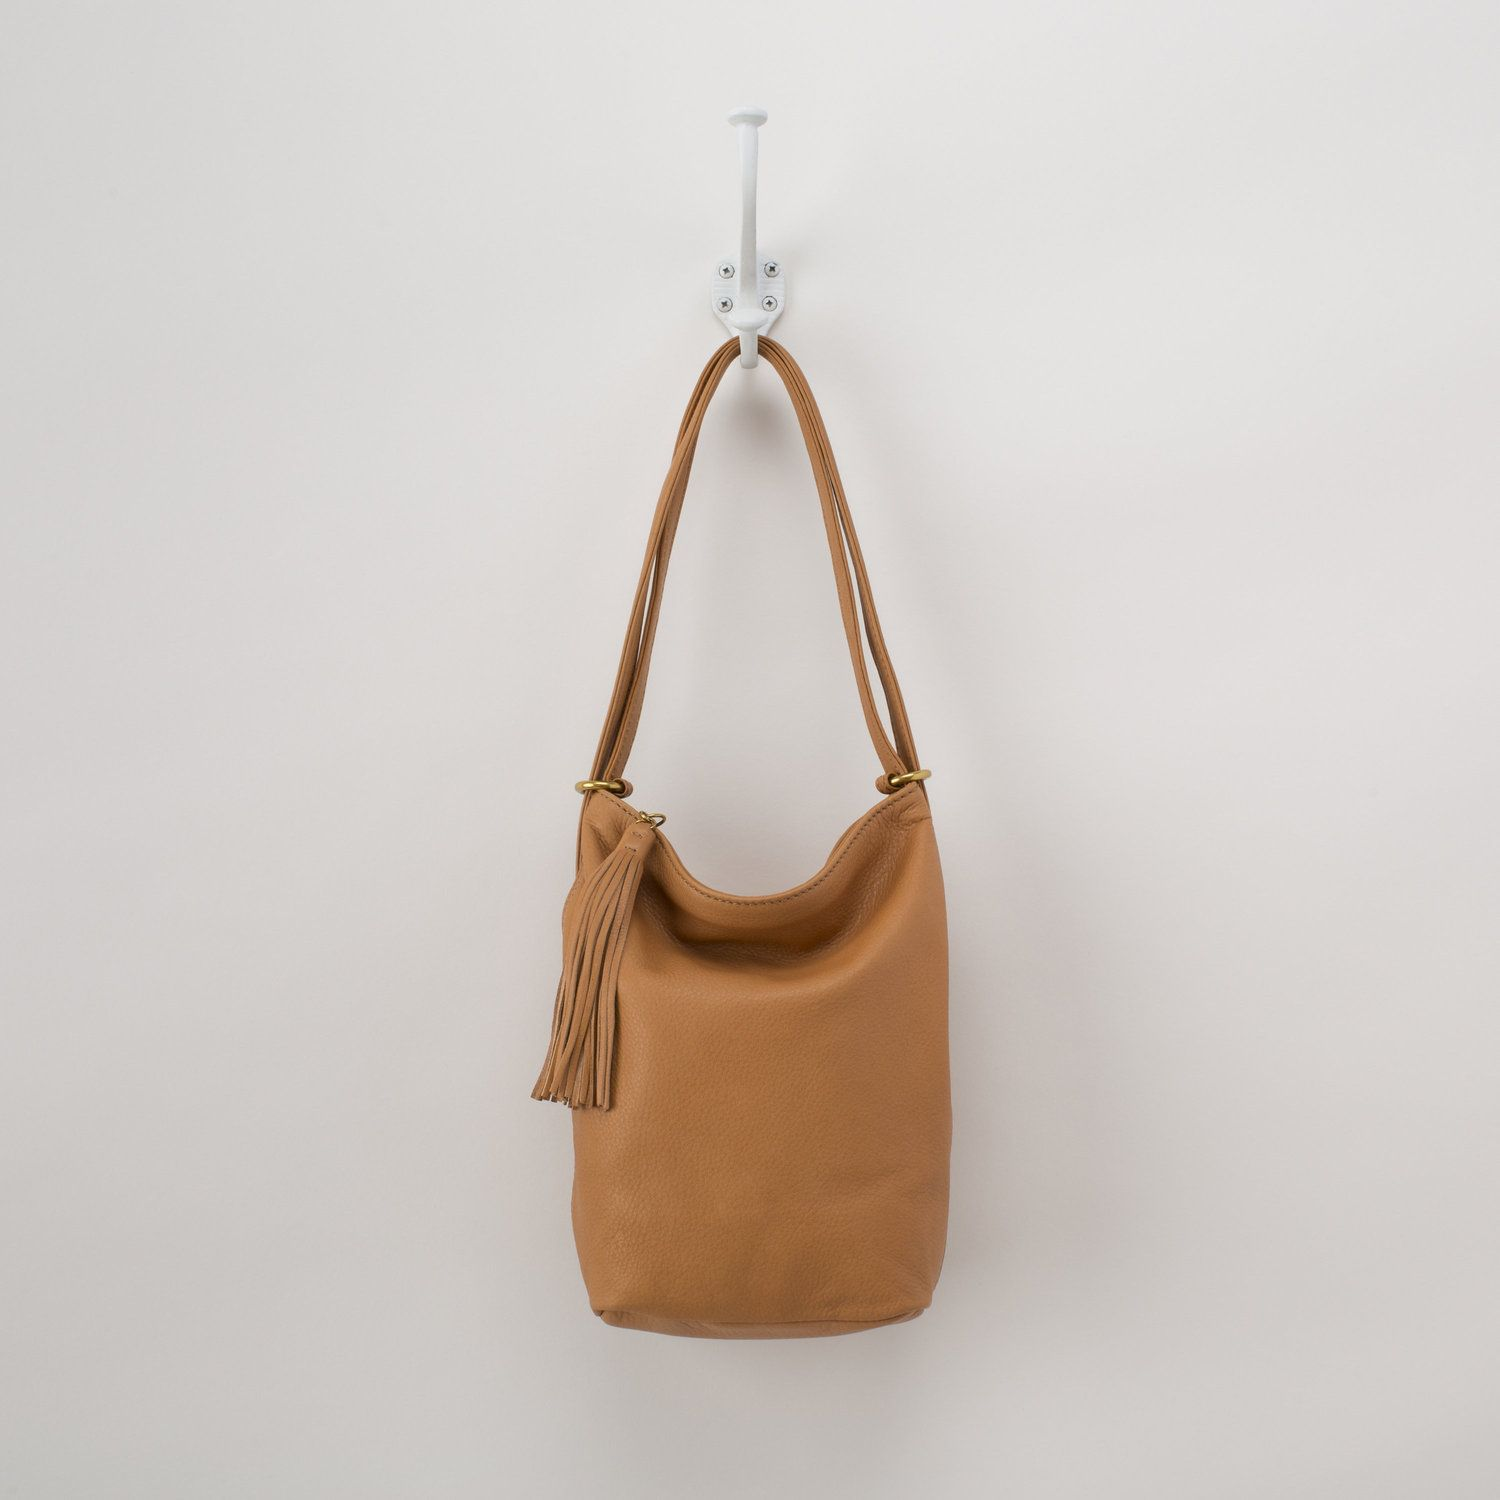 Whiskey colored leather- from Hobo Bags  9a6daa467d3f1